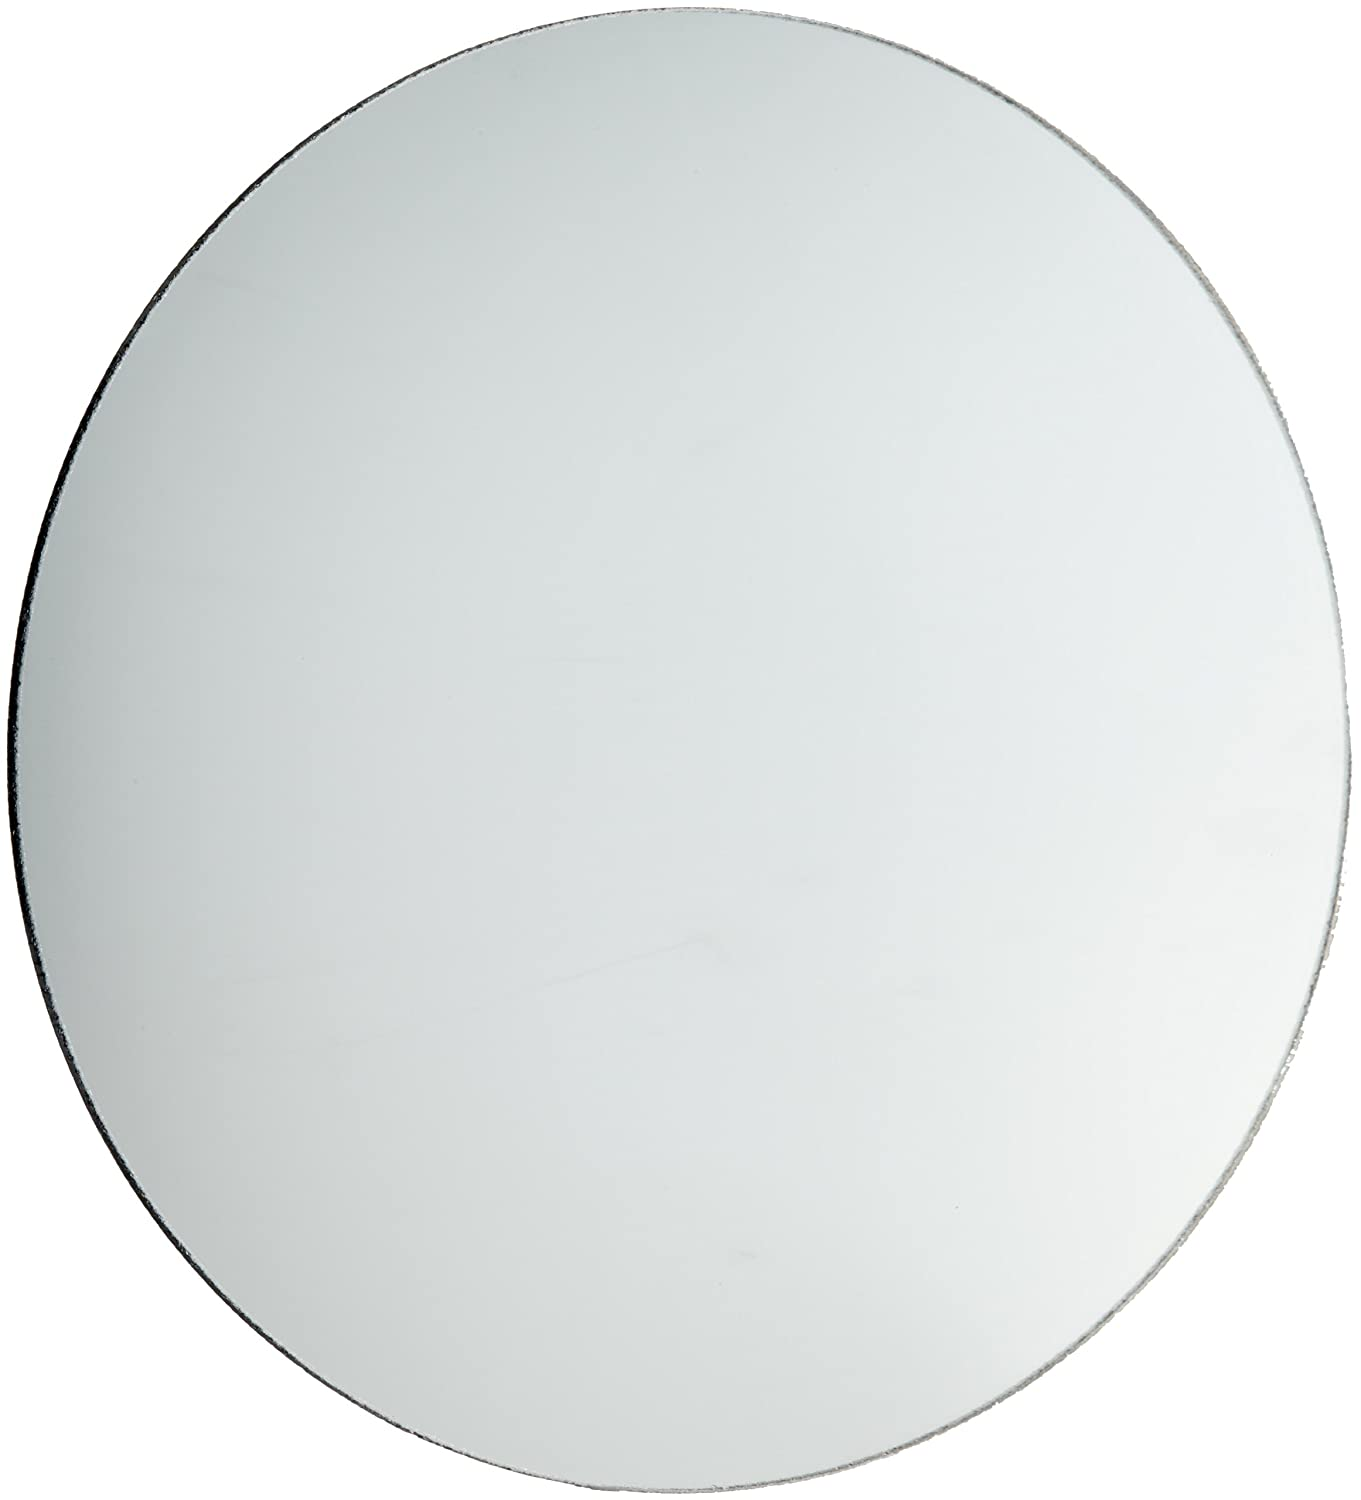 American Educational Concave Parabolic Large Demonstration Mirror, 40.5cm Diameter, 68cm Focal Length 7-1301-4